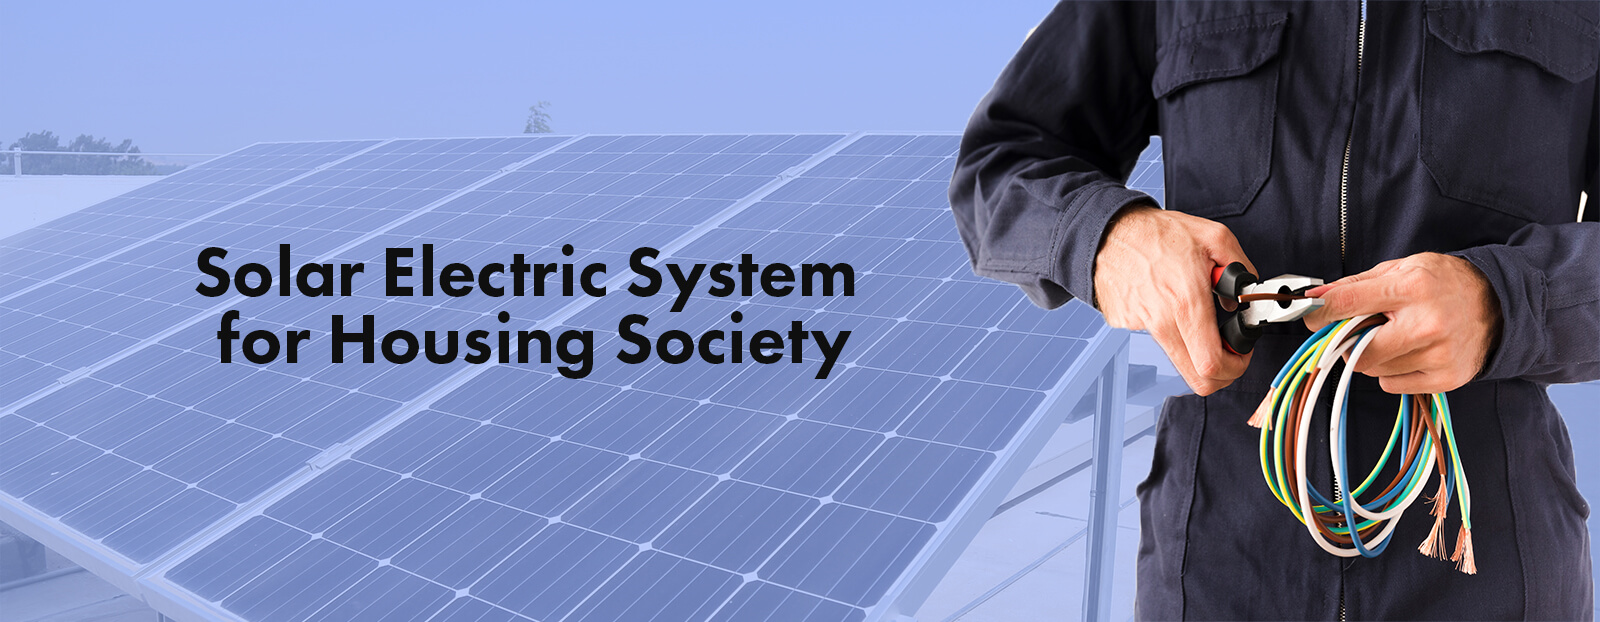 Solar Electric System for Housing Society